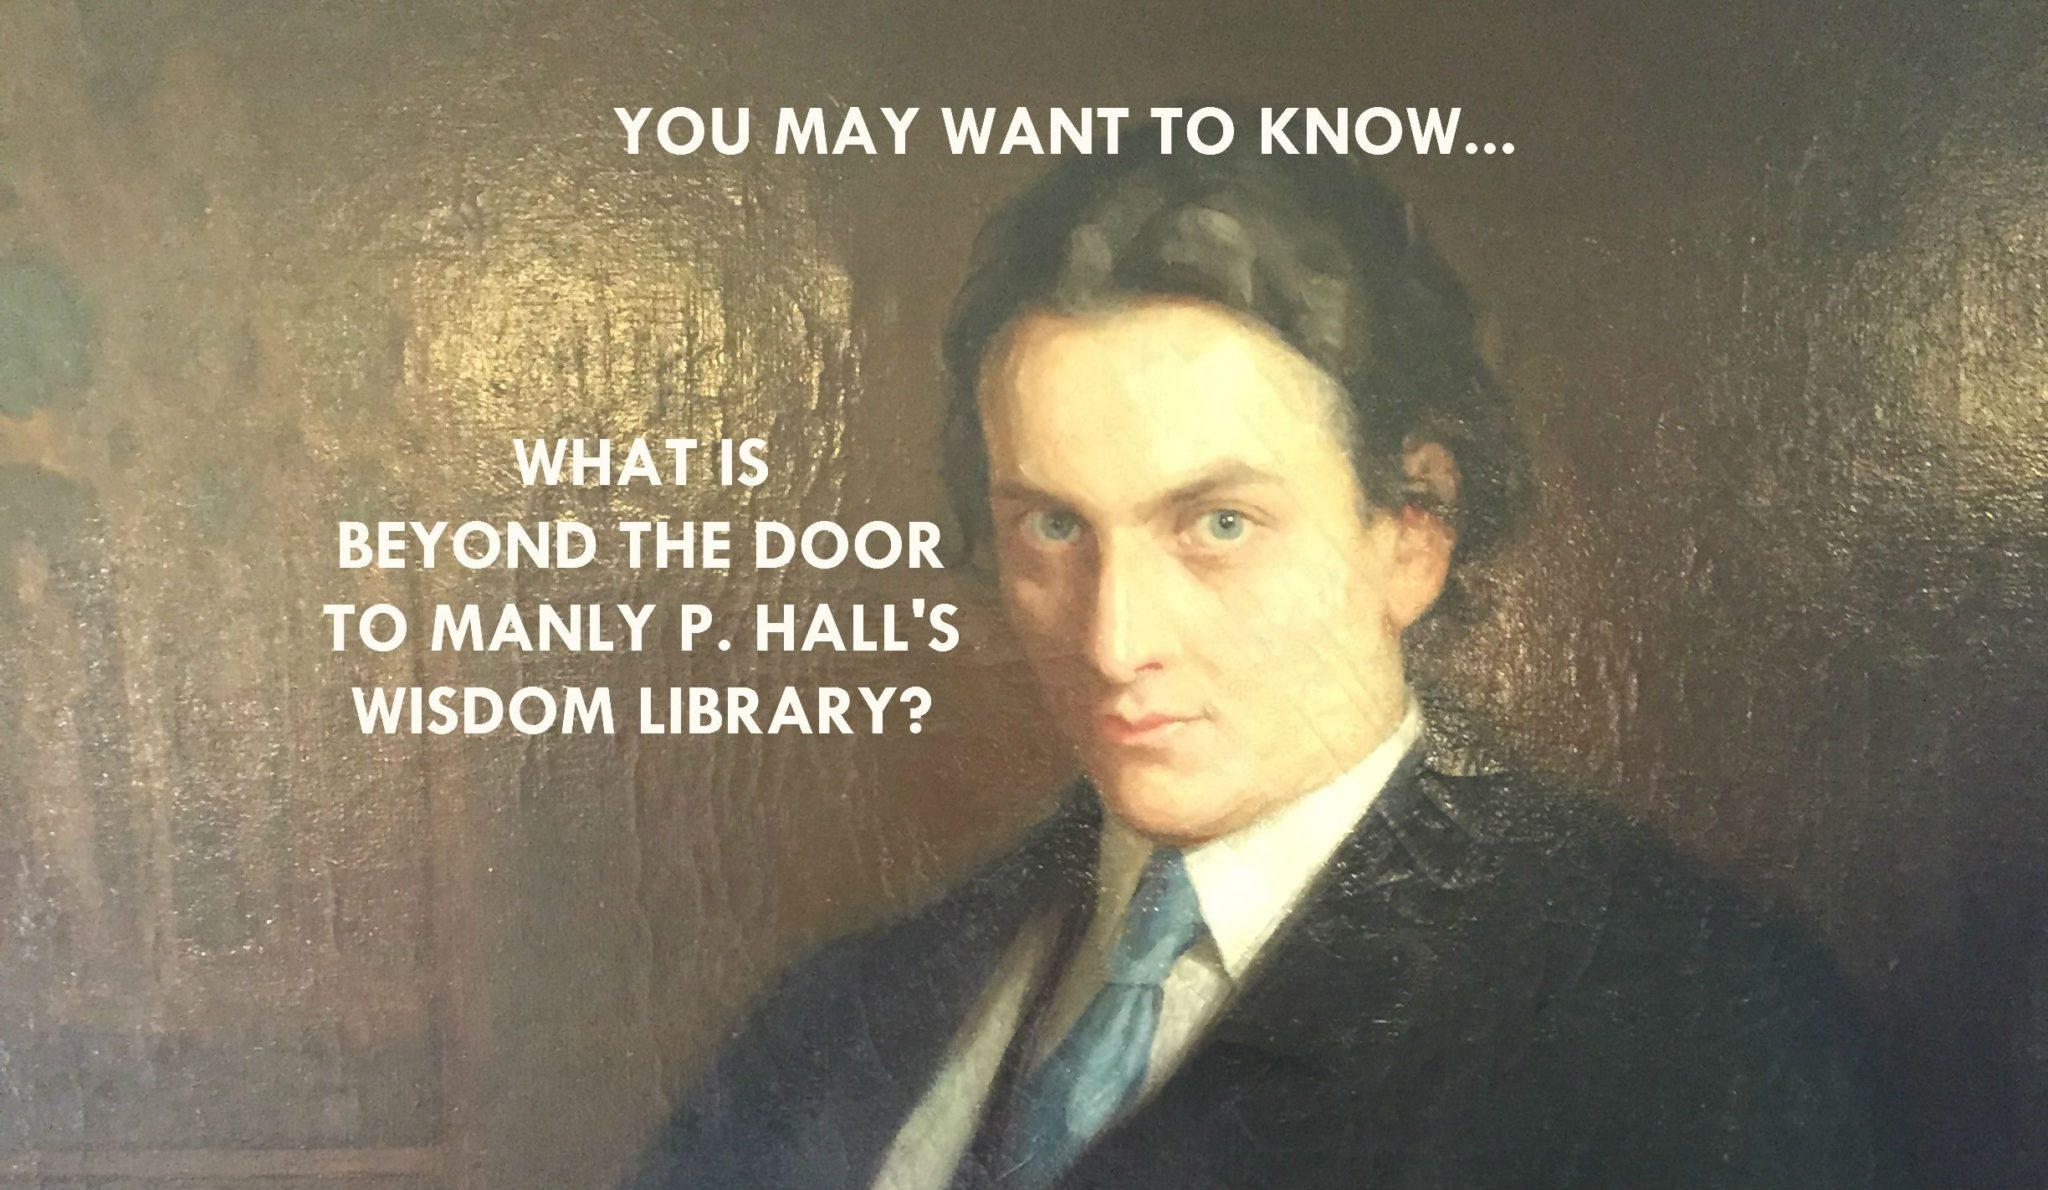 MANLY P HALL WISDOM LIBRARY